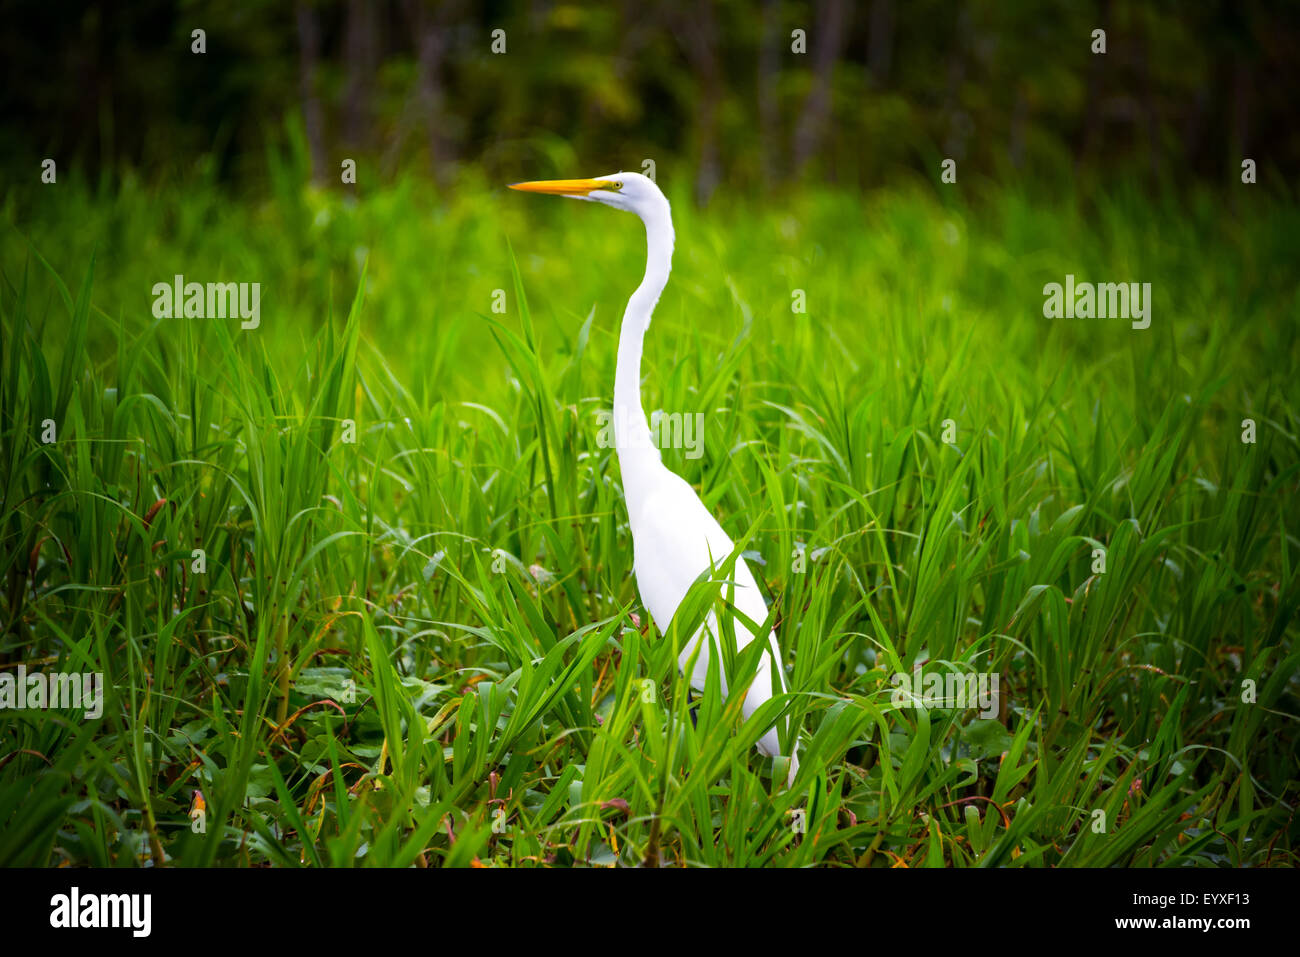 Great White Heron in lush green grass in the Amazon rain forest near Iquitos, Peru - Stock Image